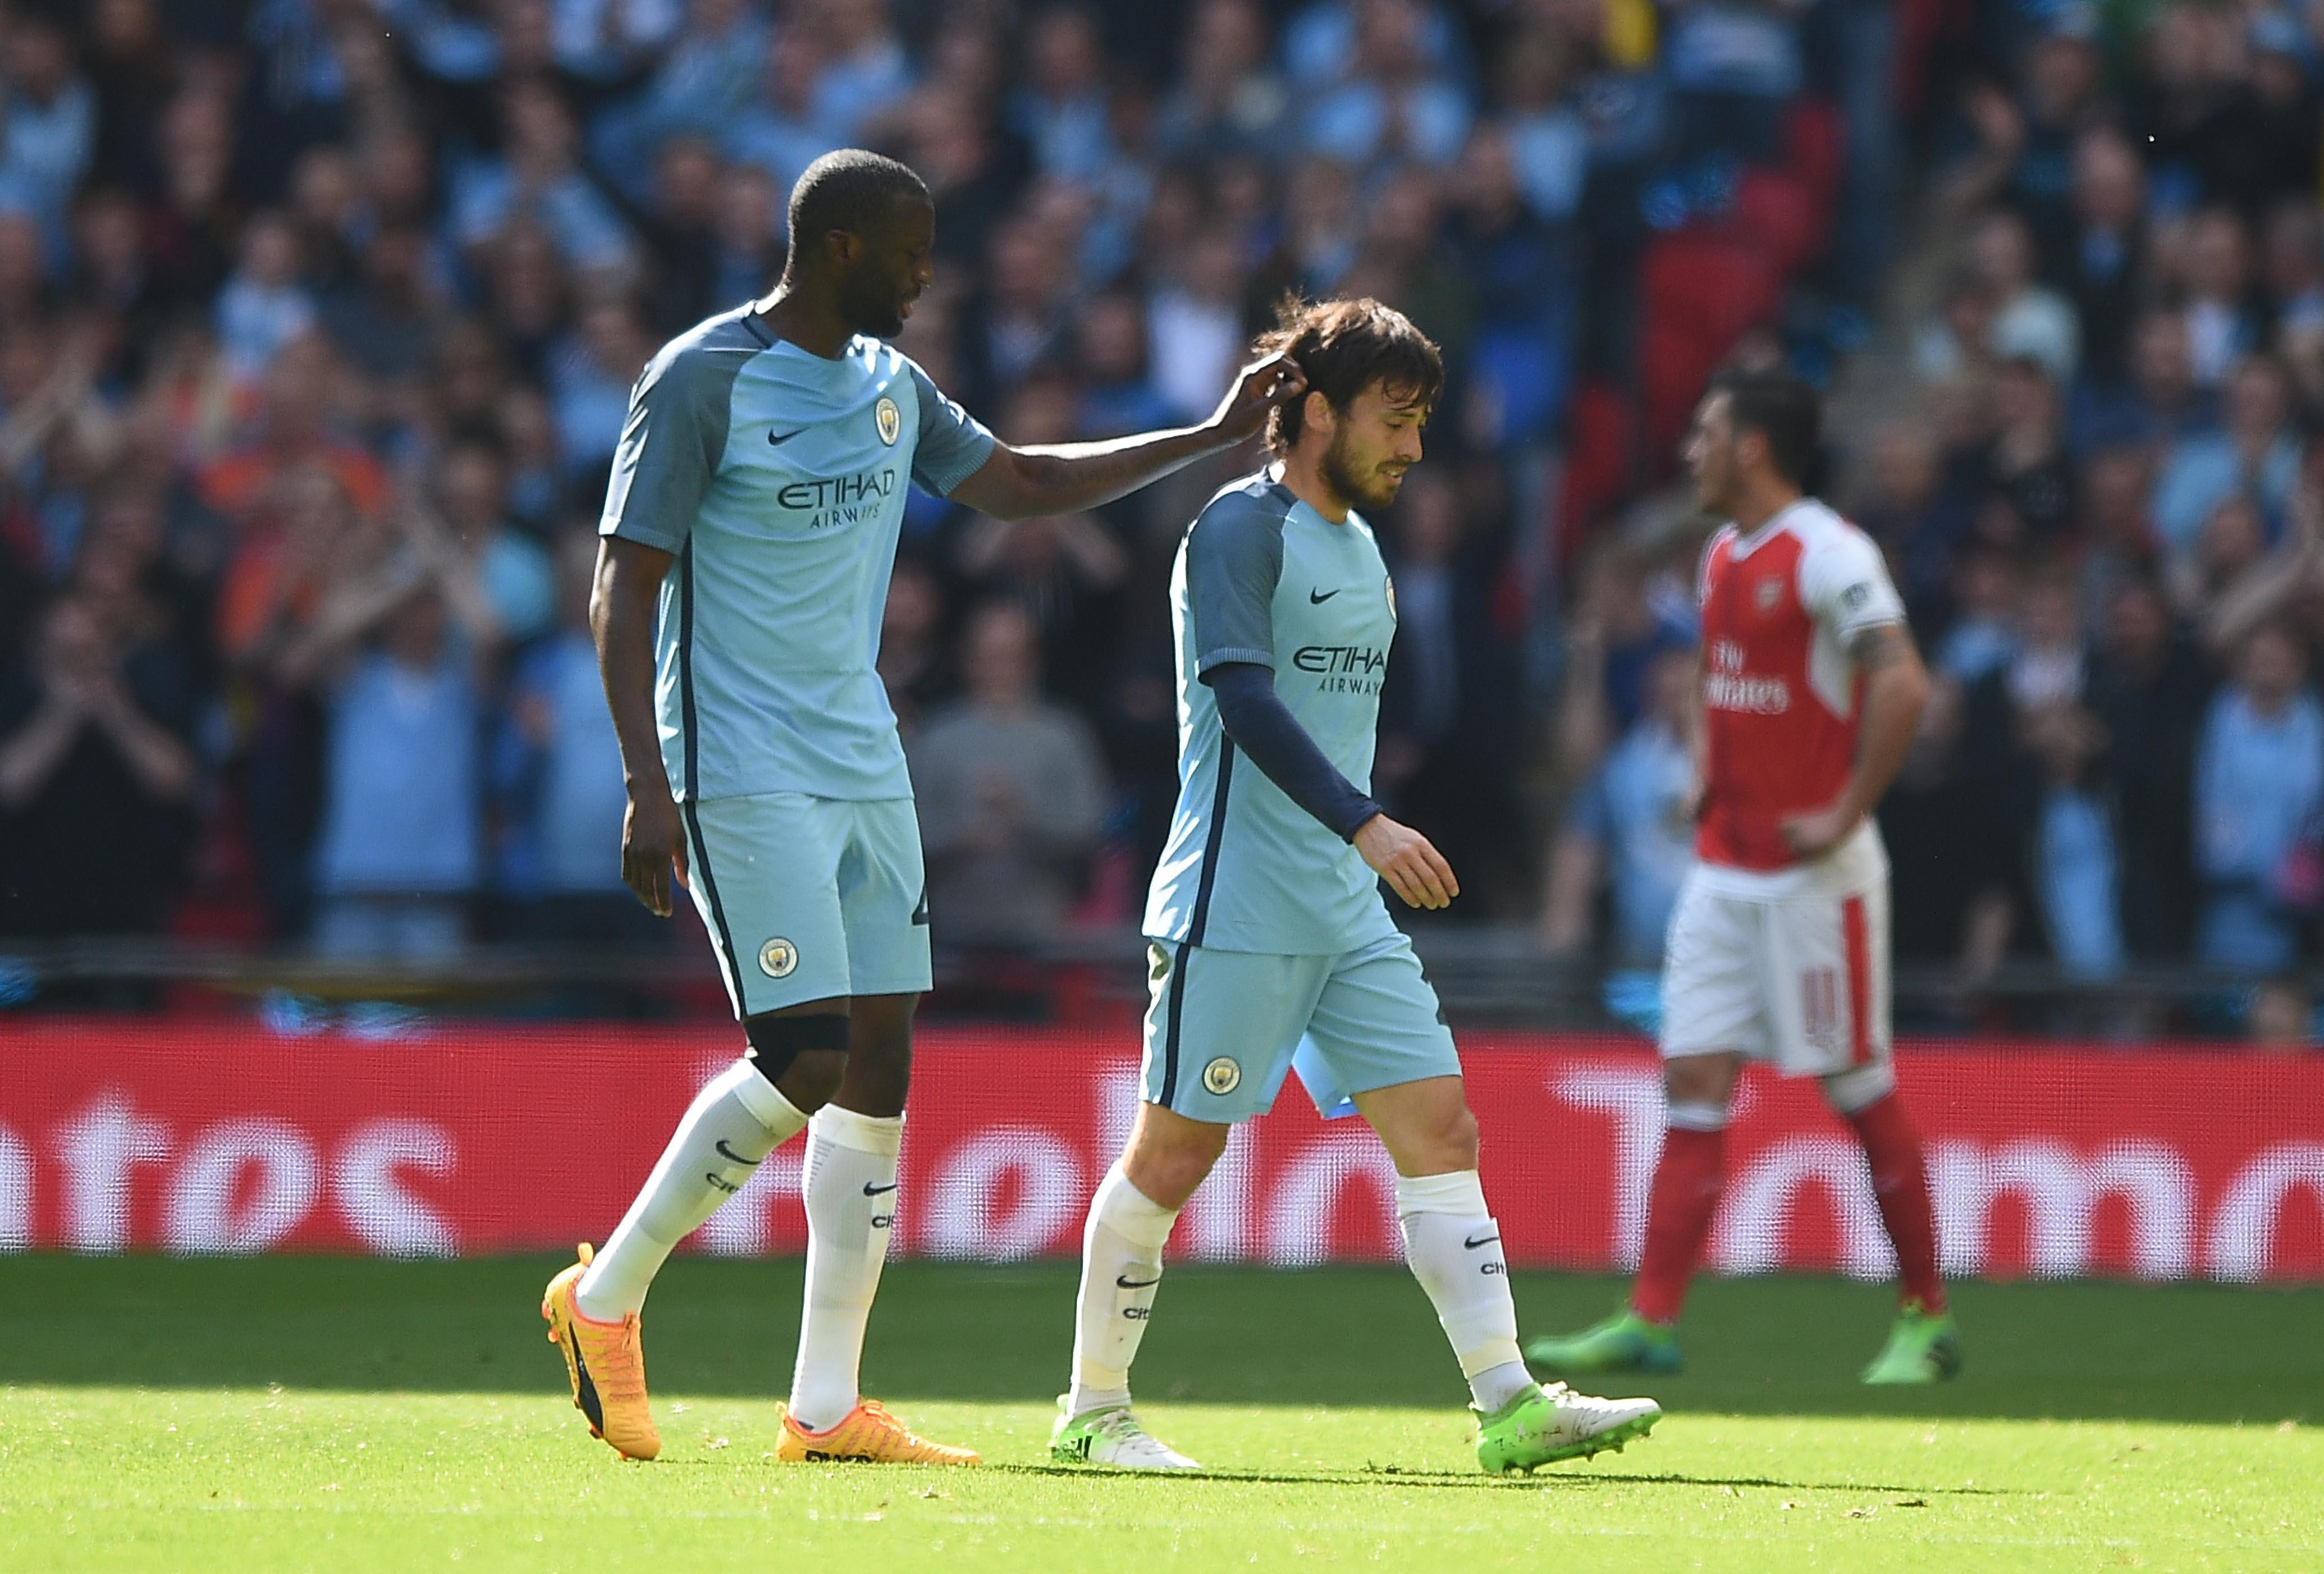 David Silva hobbled out of Manchester City's FA Cup semi-final defeat to Manchester City after a heavy tackle from Gabriel